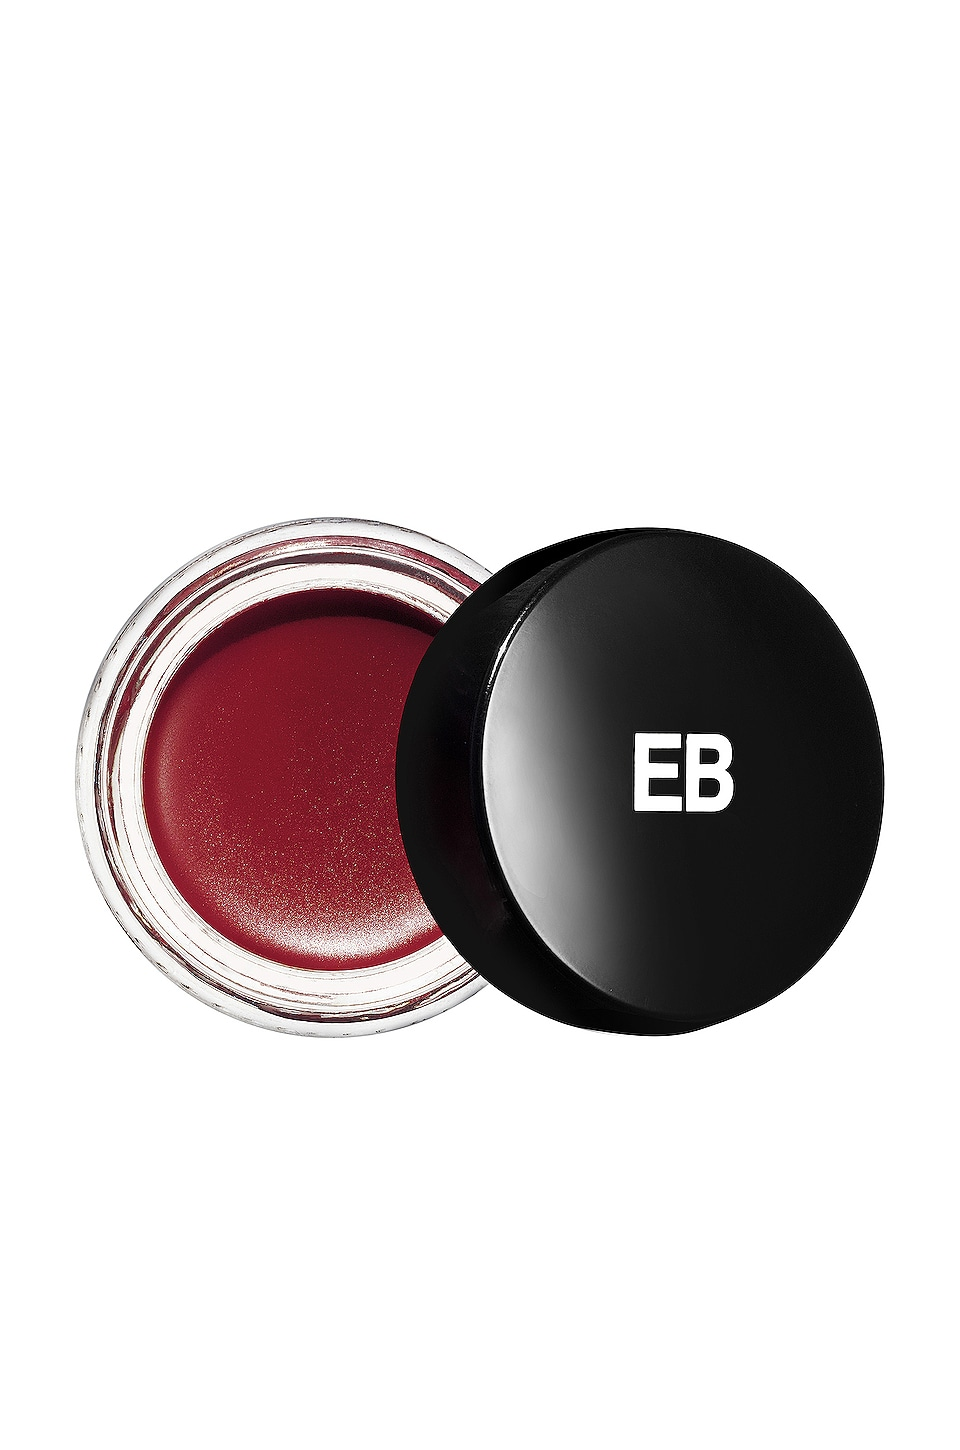 Edward Bess Glossy Rouge for Lips and Cheeks in Spanish Rose